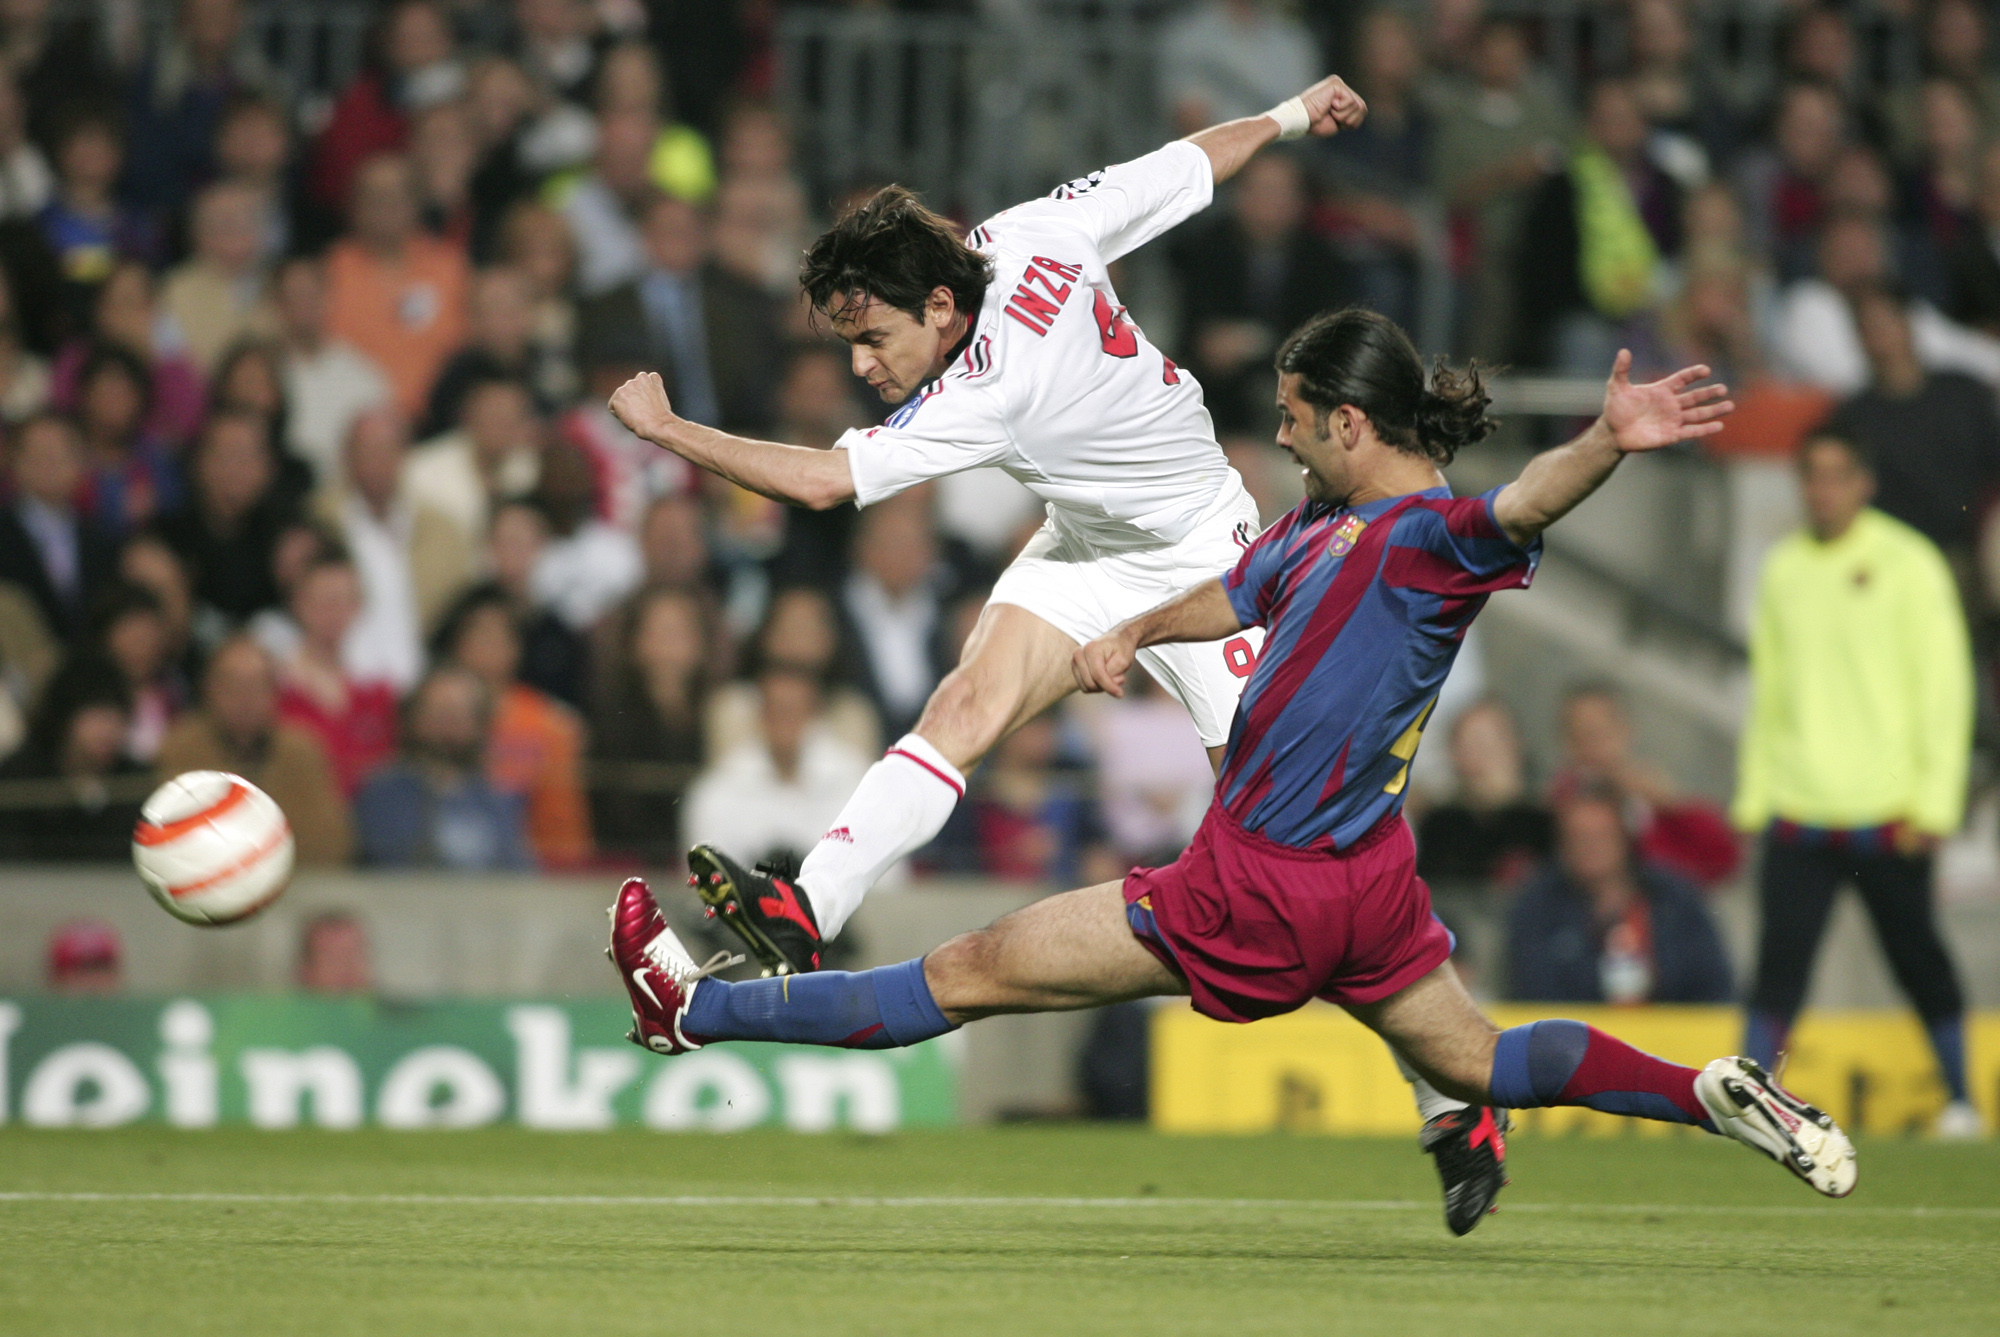 Pipo Inzaghi (FC Barcelone vs Milan AC, Barcelone, ESPAGNE, 2006) Copyright JEAN-MARIE HERVIO